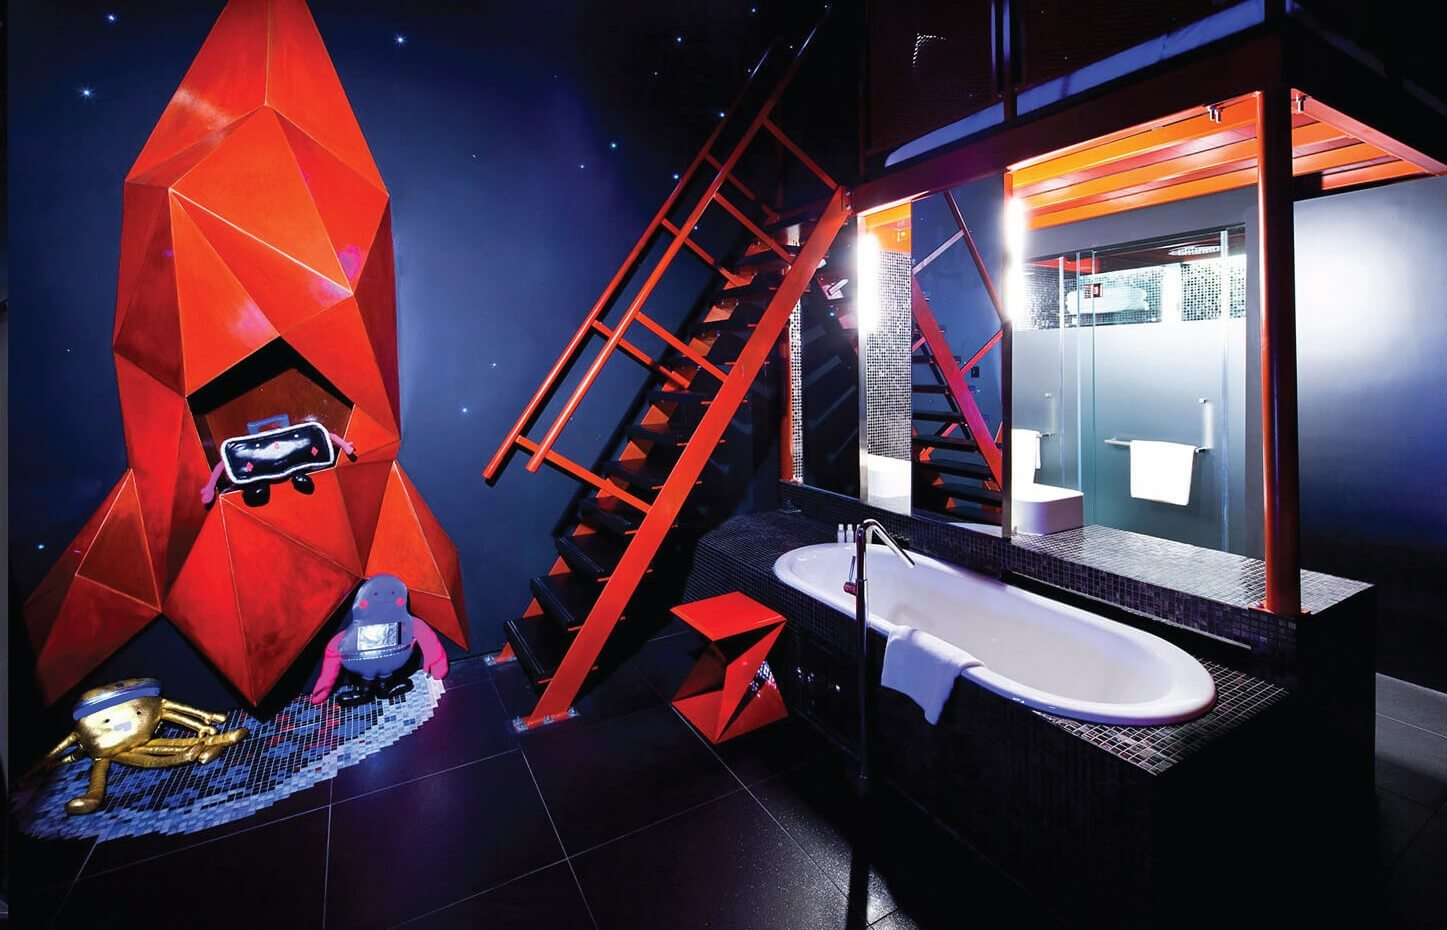 Wanderlust Hotel space themed rooms